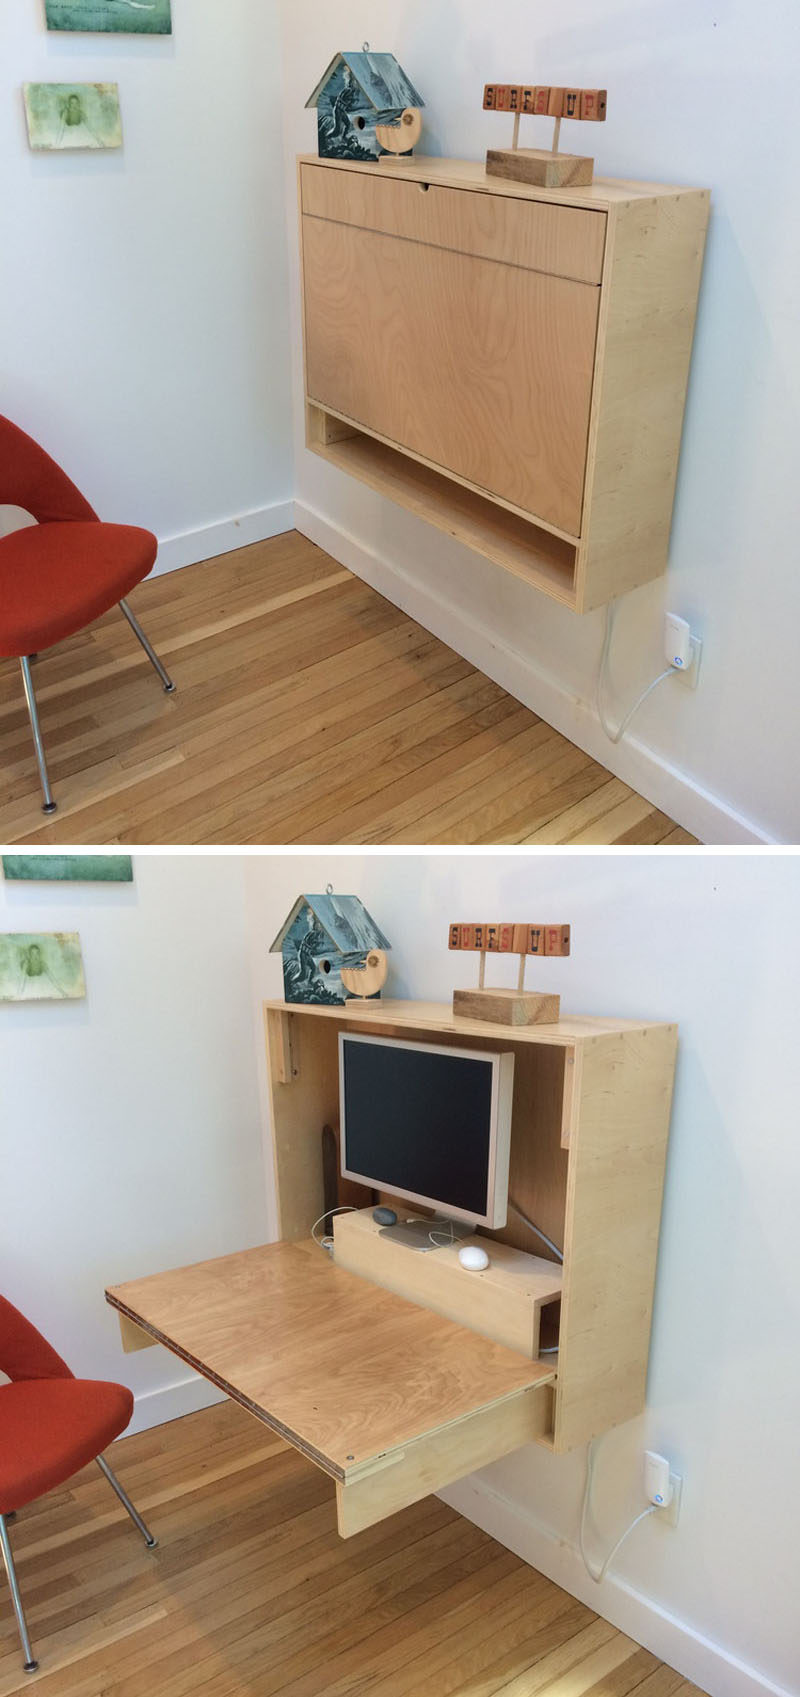 16 Wall Desk Ideas That Are Great For Small Es If You Re